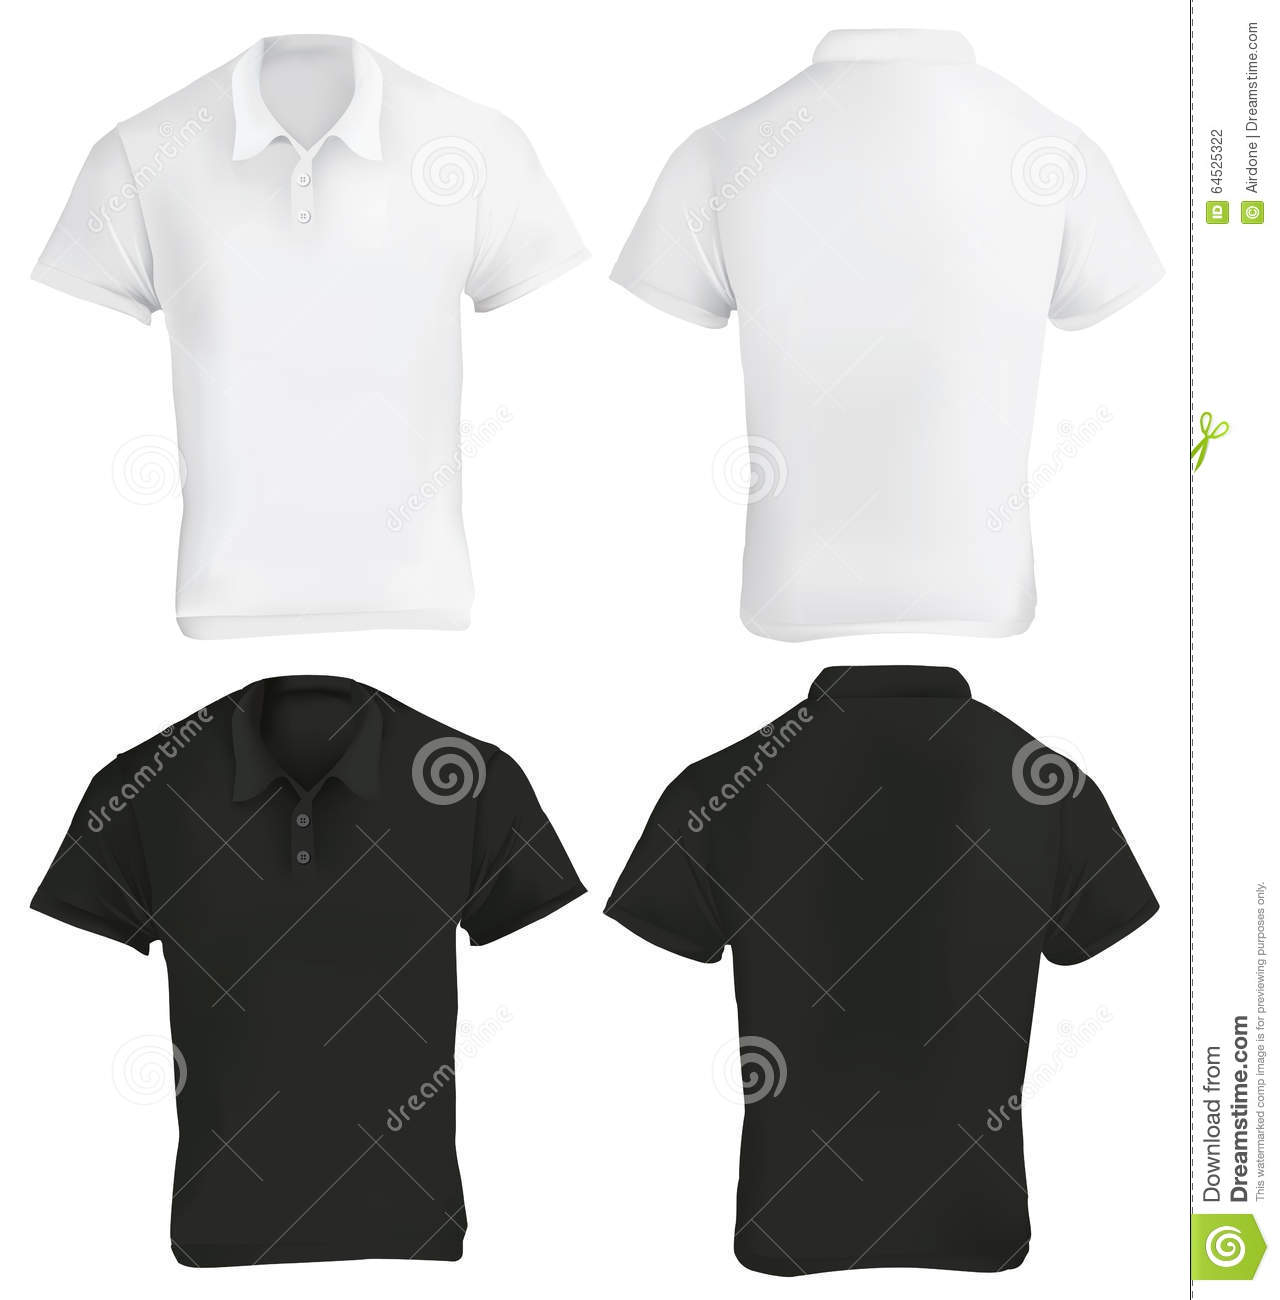 Zwart wit polo shirt design template vector illustratie for Polo shirt design template